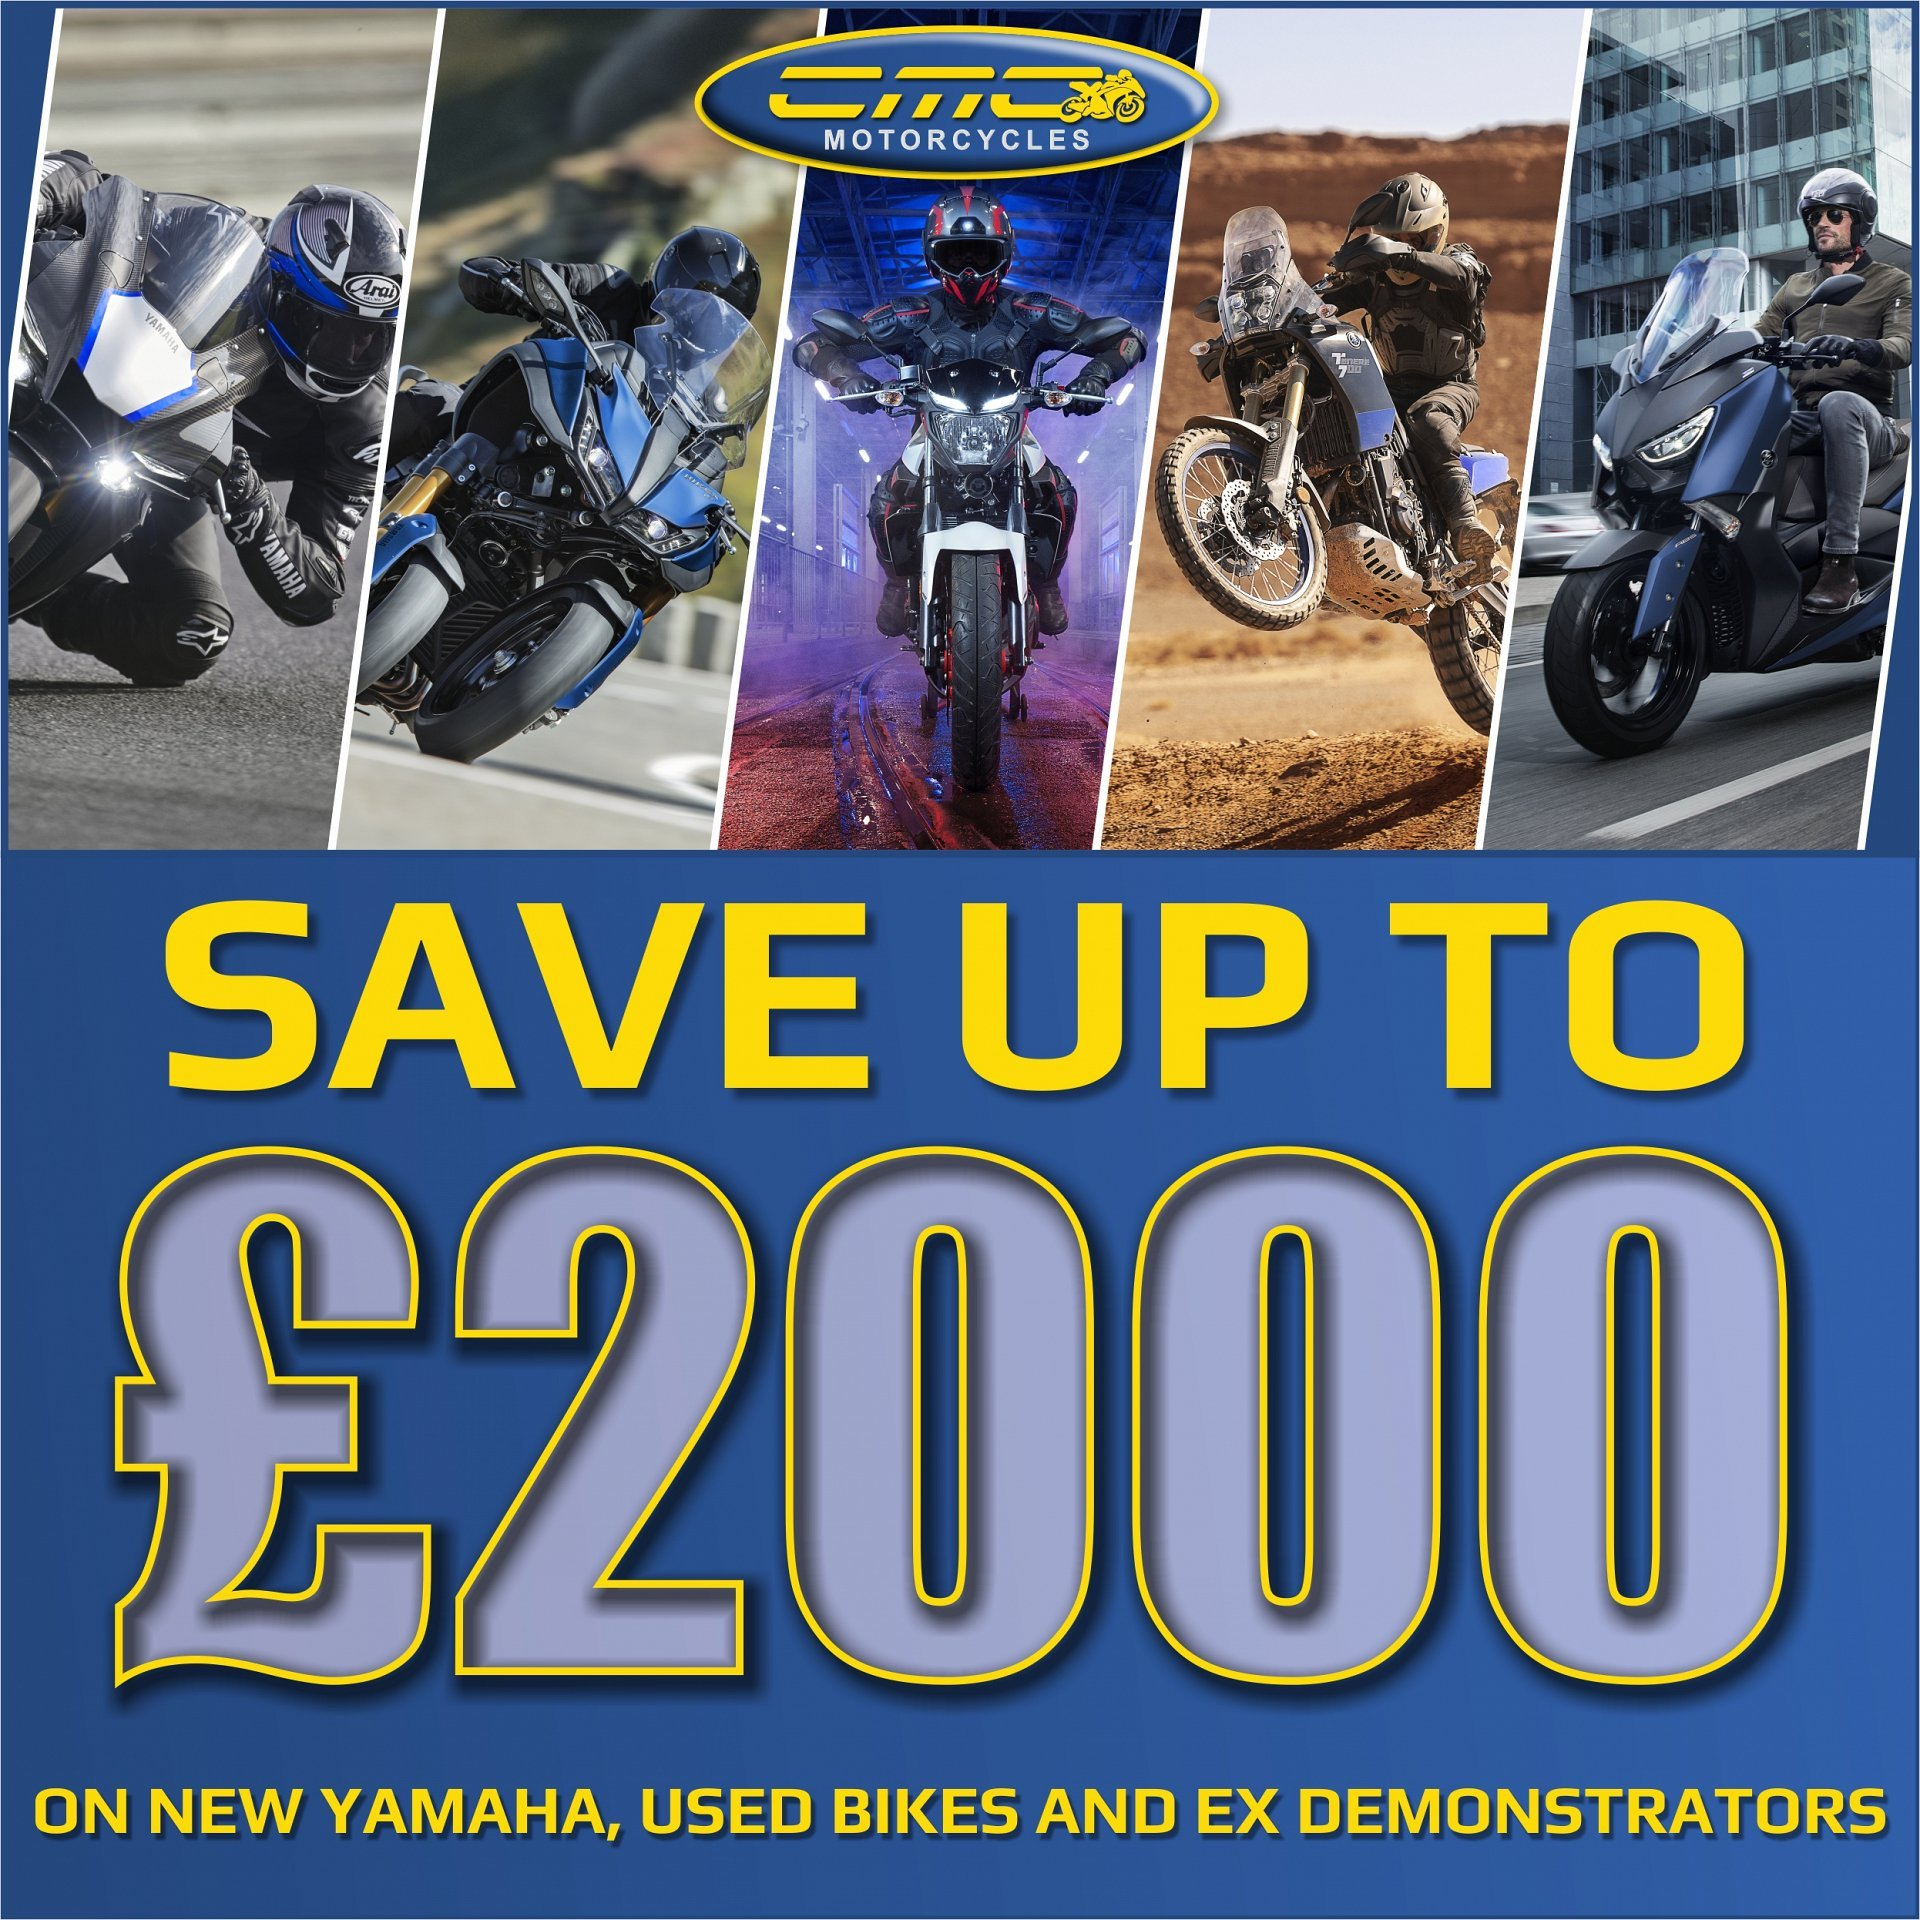 Huge discounts on brand new Yamaha Motorcycles and Used Bikes.